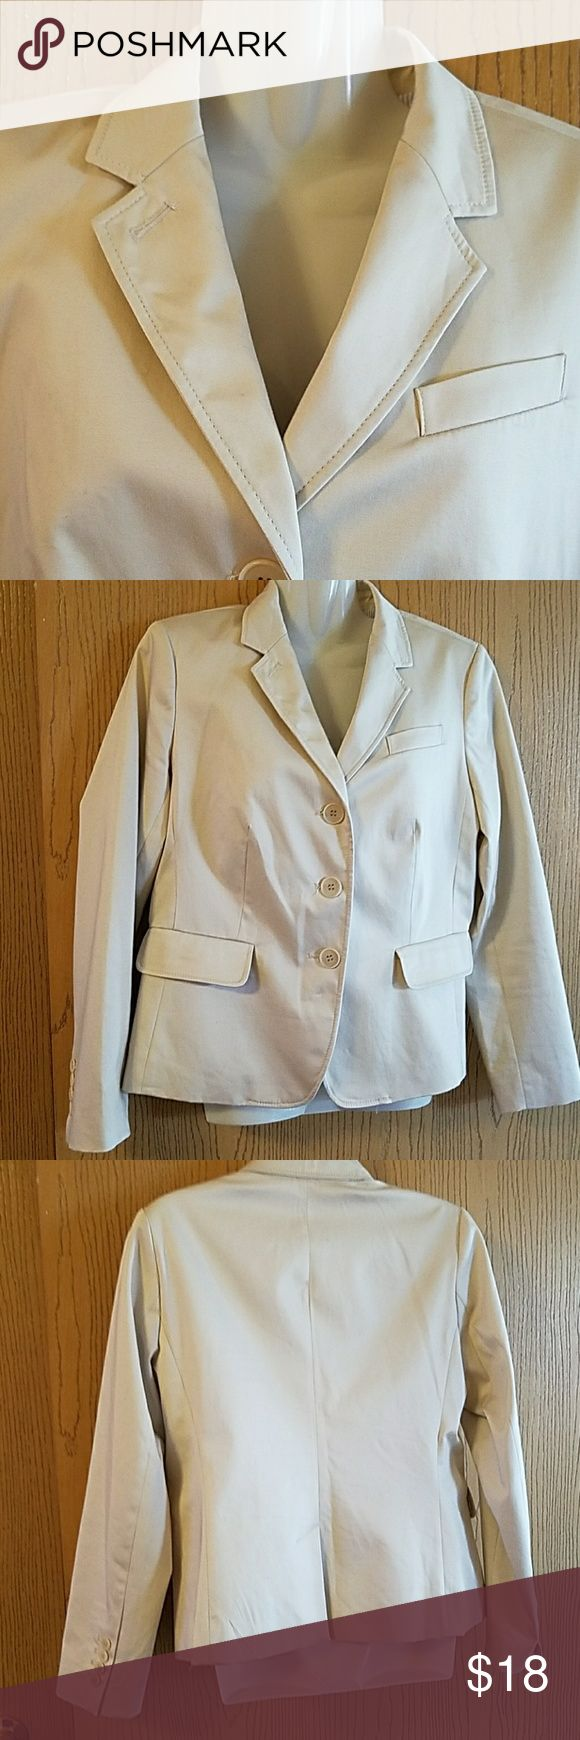 "Talbots Nice Light Tan Blazer. Goes with every Color. Length 22"", Arms 23"", Bust measures up too 36. Fully Lined. SIZE 10P. Nwot. Talbots Jackets & Coats Blazers"